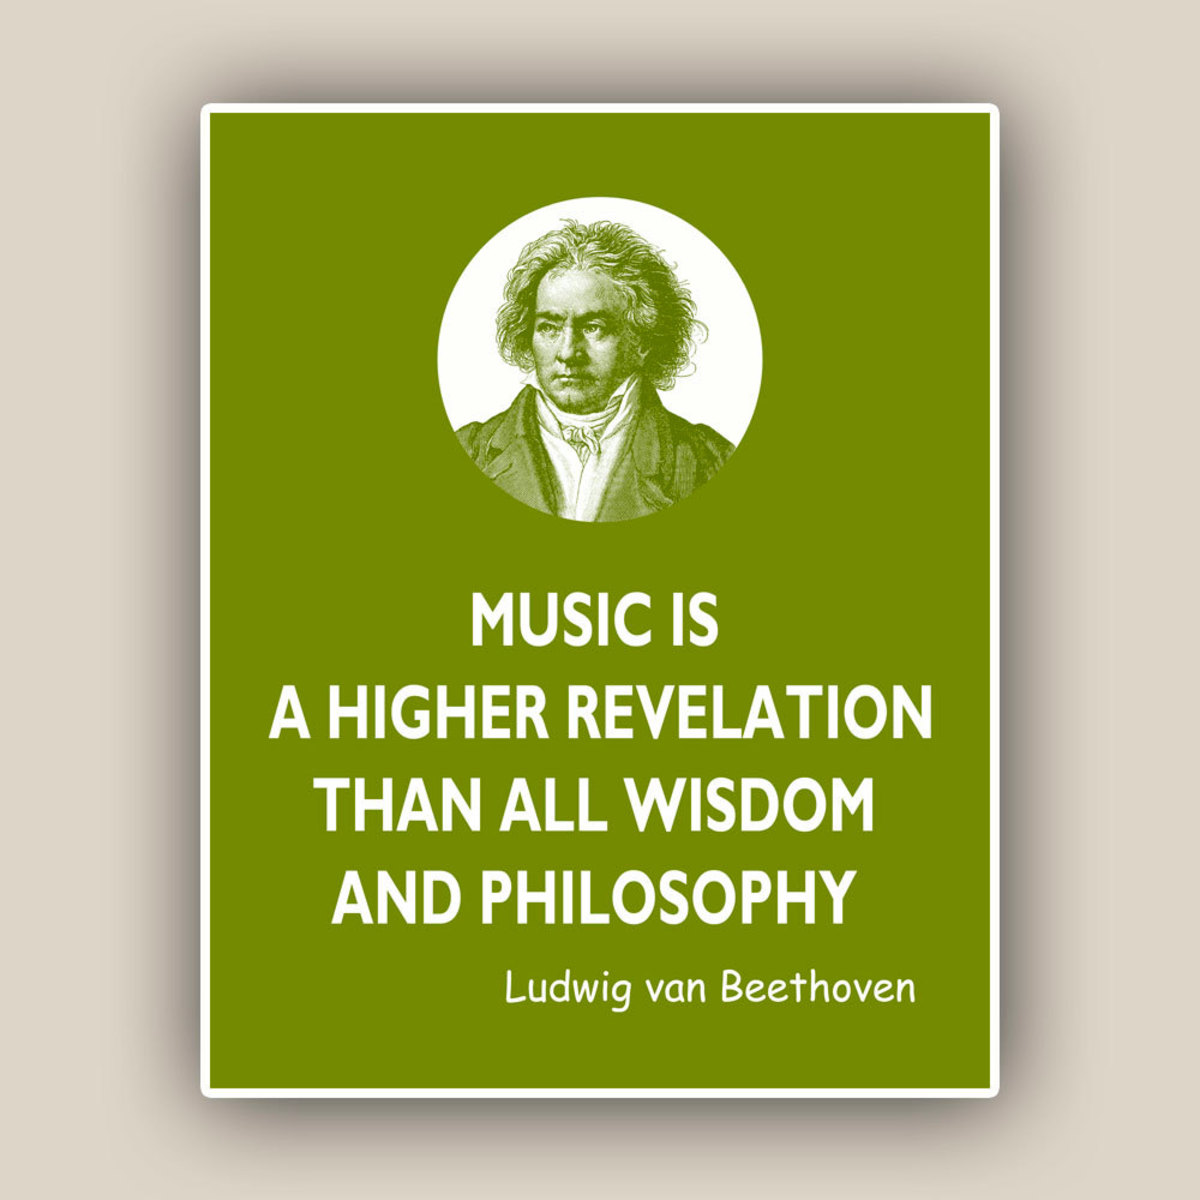 my-letter-and-confession-to-ludwig-van-beethoven